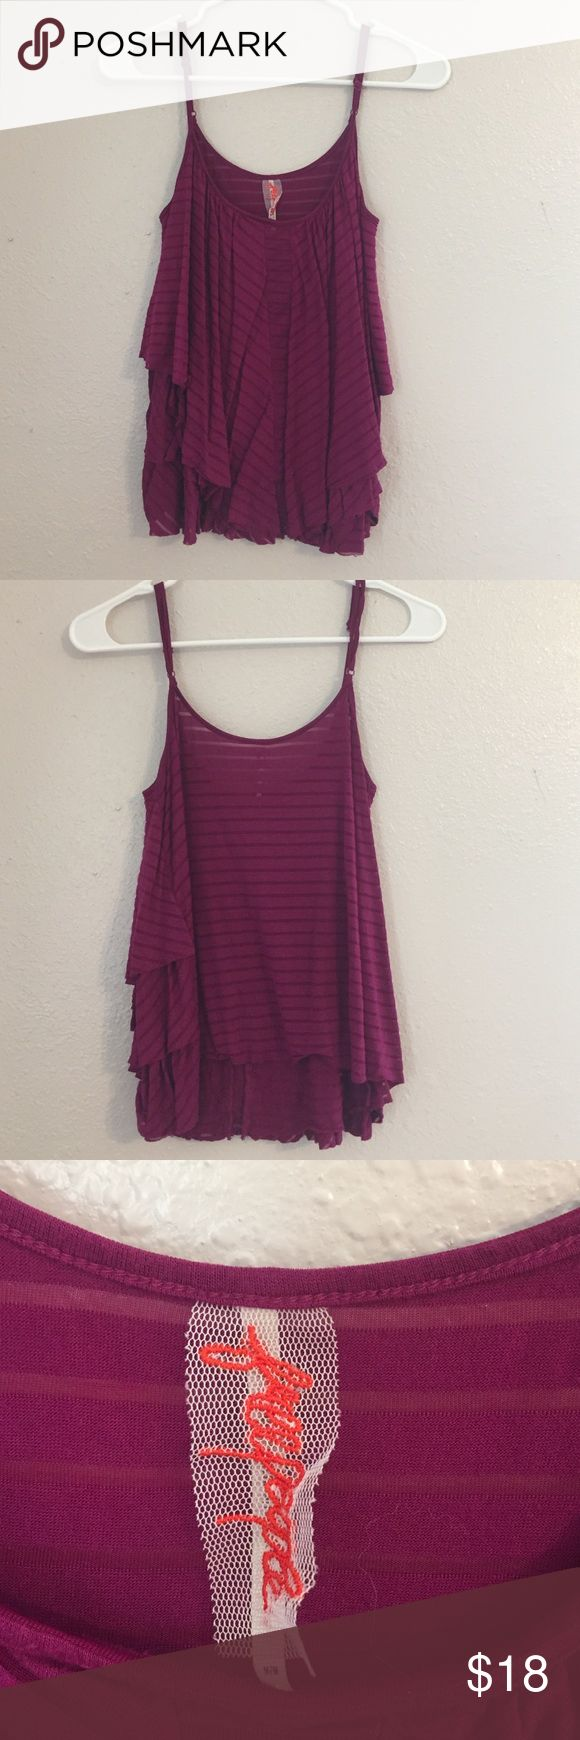 Free People Flowy Purple Cami Excellent used condition. Adjustable straps. Ruffle details. Fits TTS Free People Tops Tank Tops